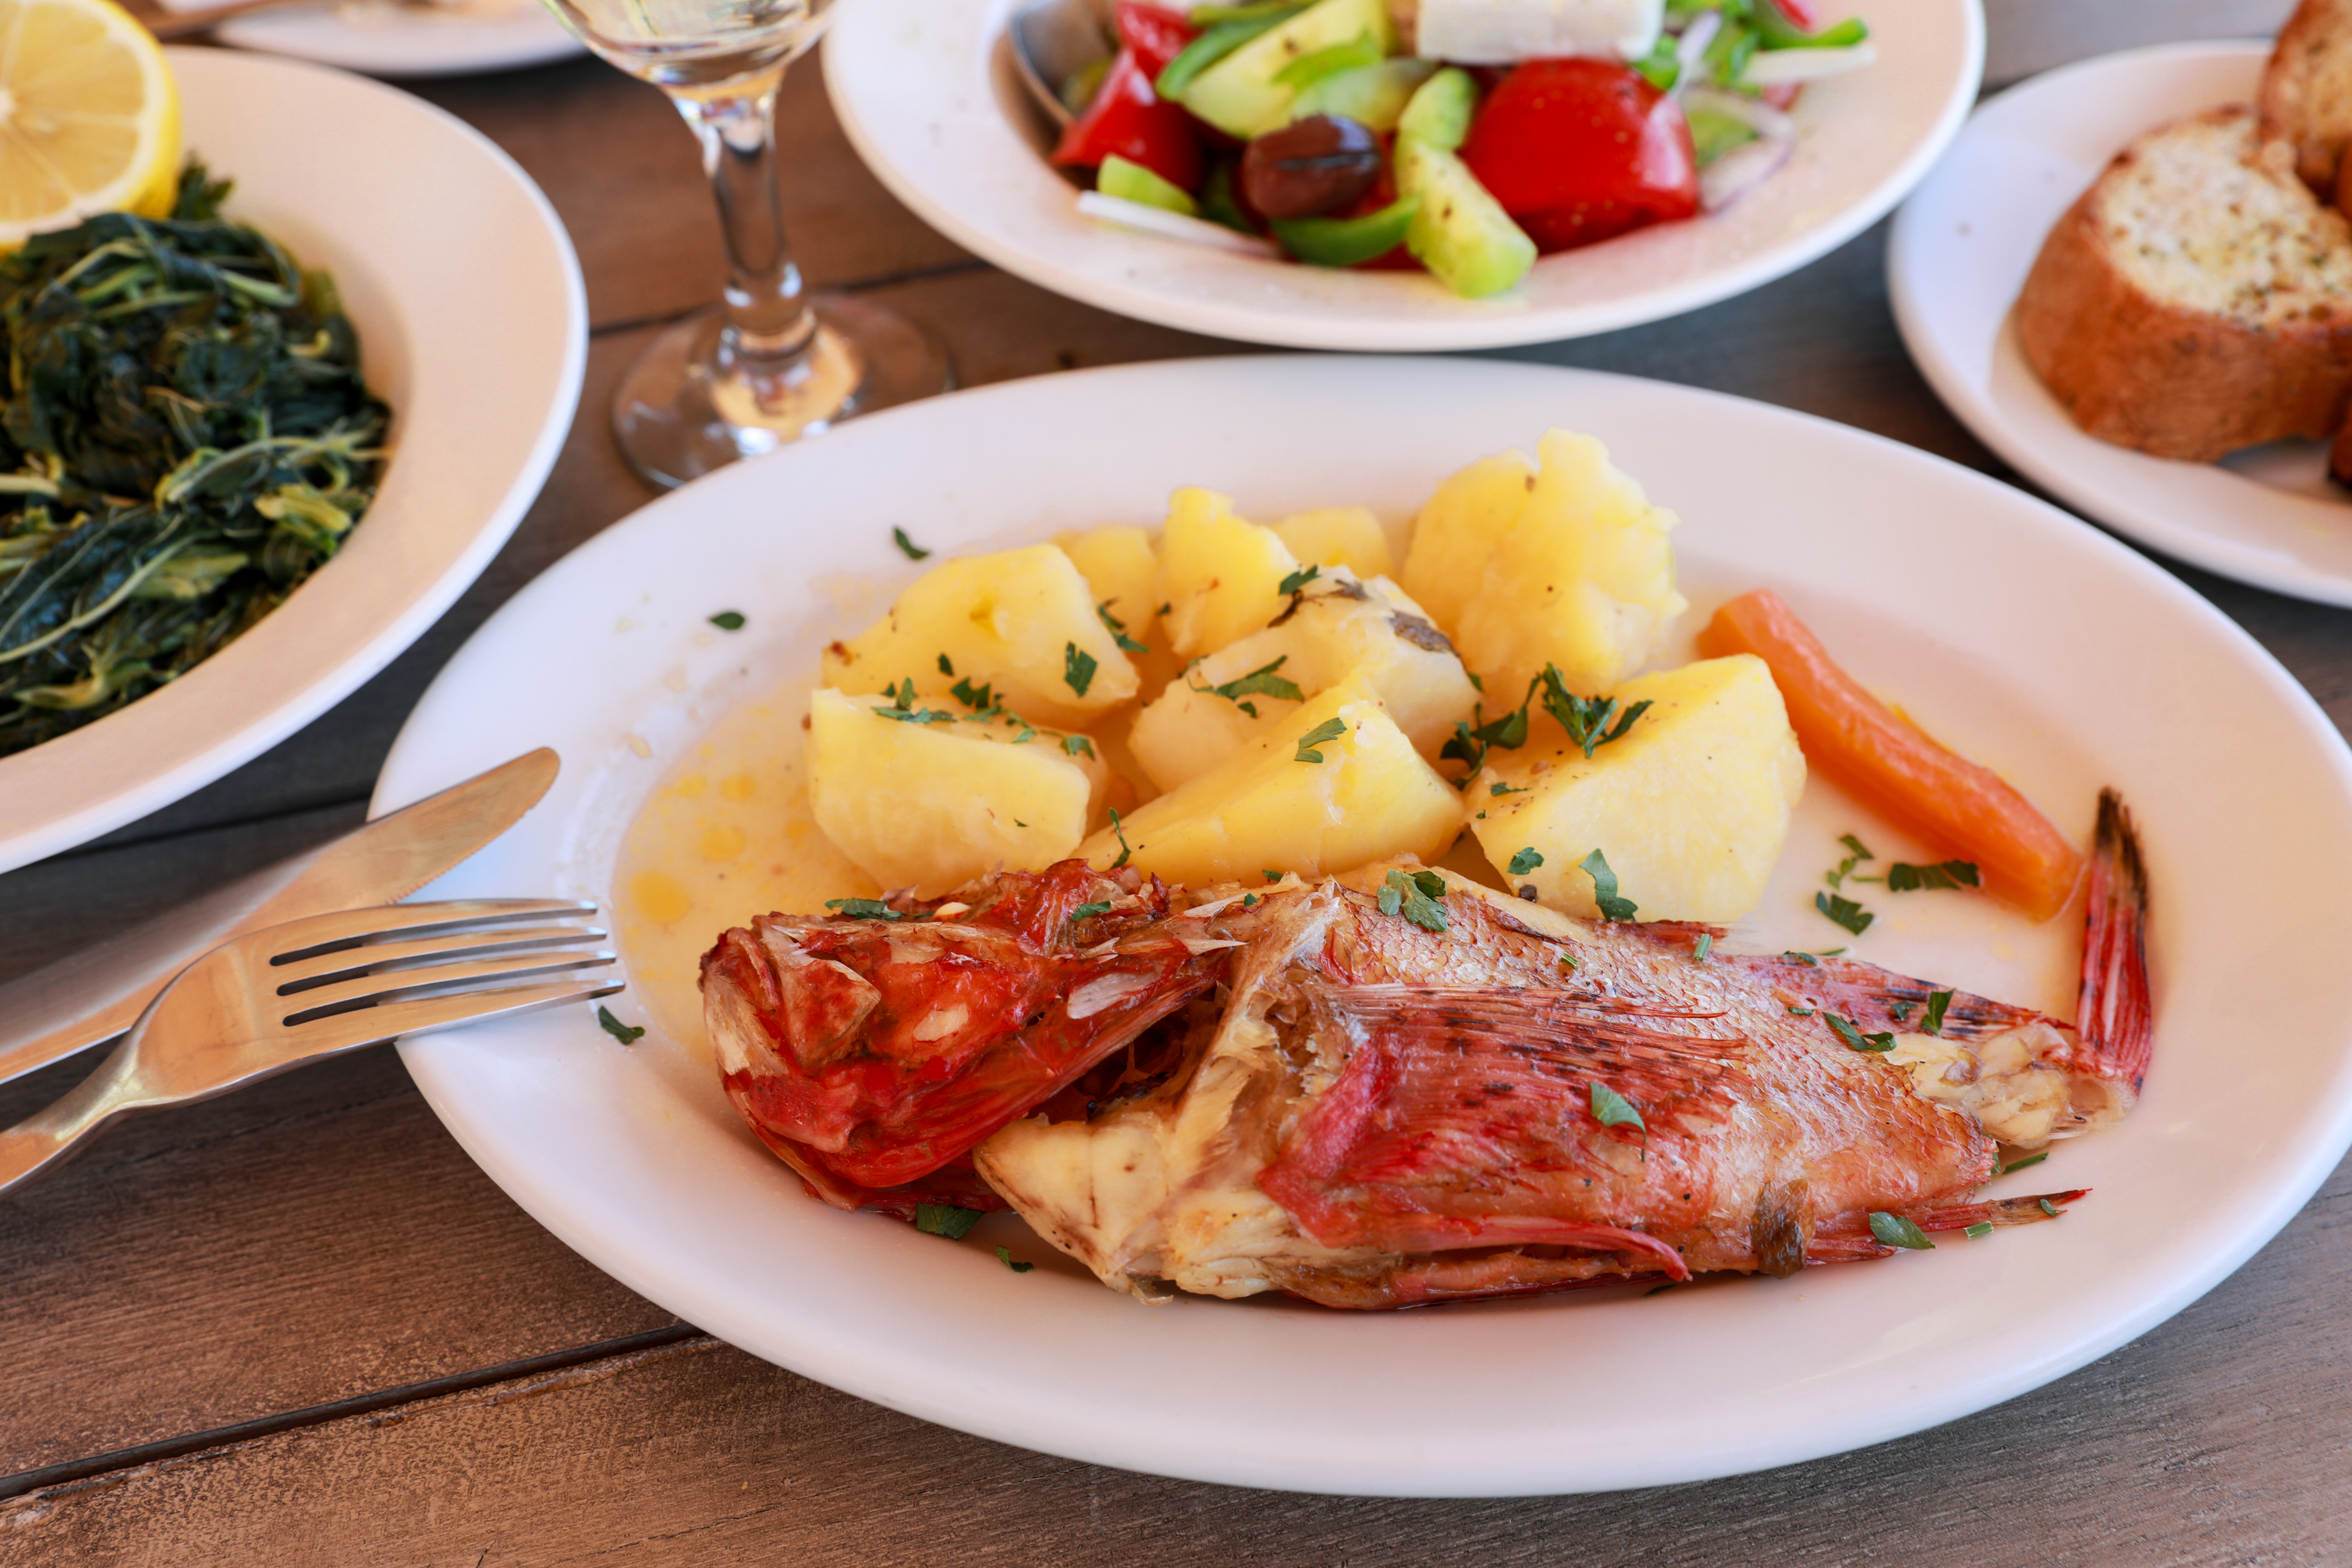 red scorpionfish with potatoes and plates of vegetables and bread